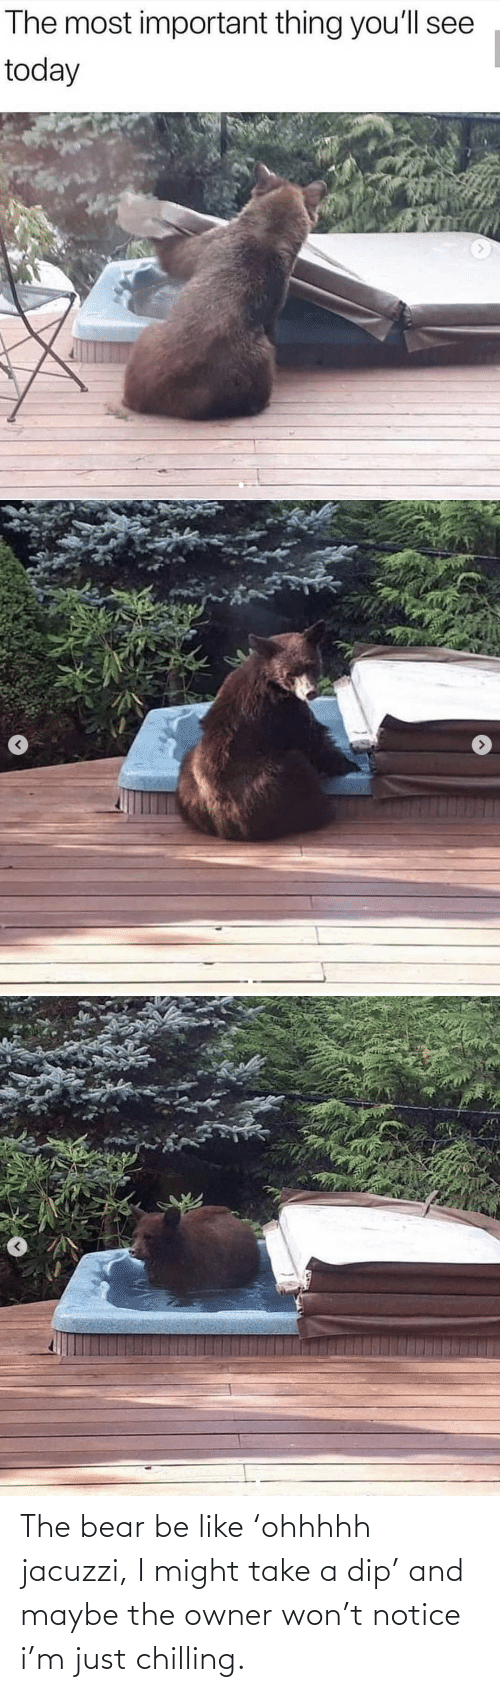 chilling: The bear be like 'ohhhhh jacuzzi, I might take a dip' and maybe the owner won't notice i'm just chilling.